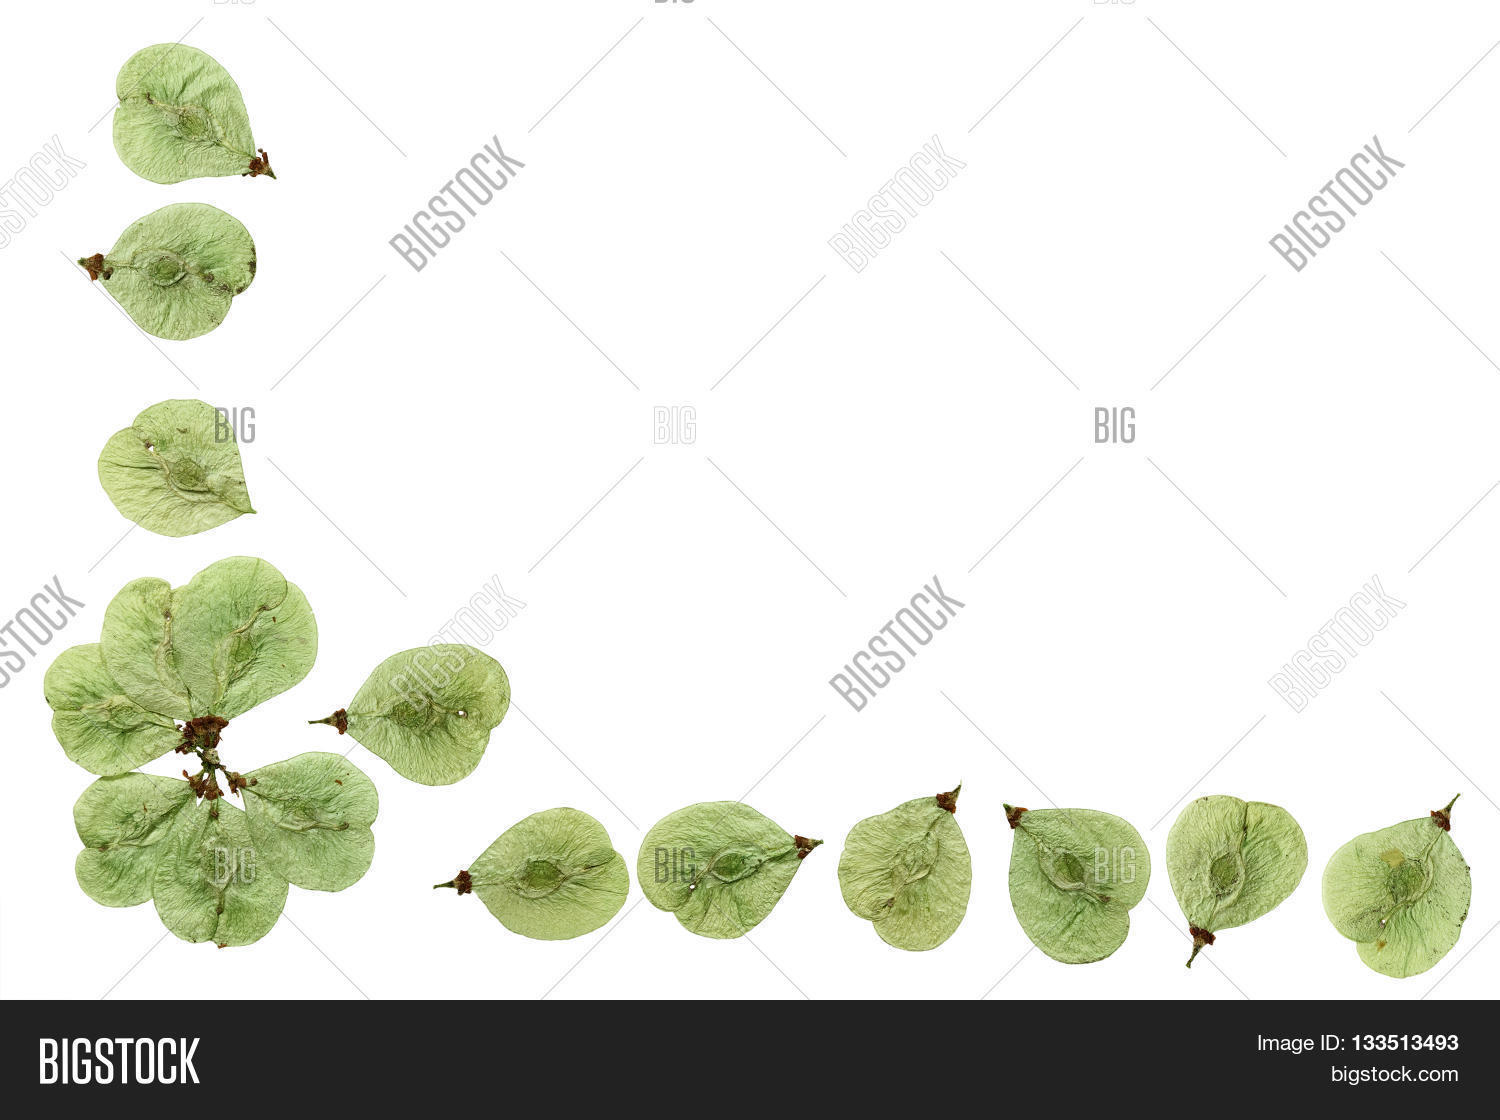 How to scrapbook dried flowers - Pressed And Dried Flowers Elm Border Edging For Decoration Scrapbook Isolated On White Background